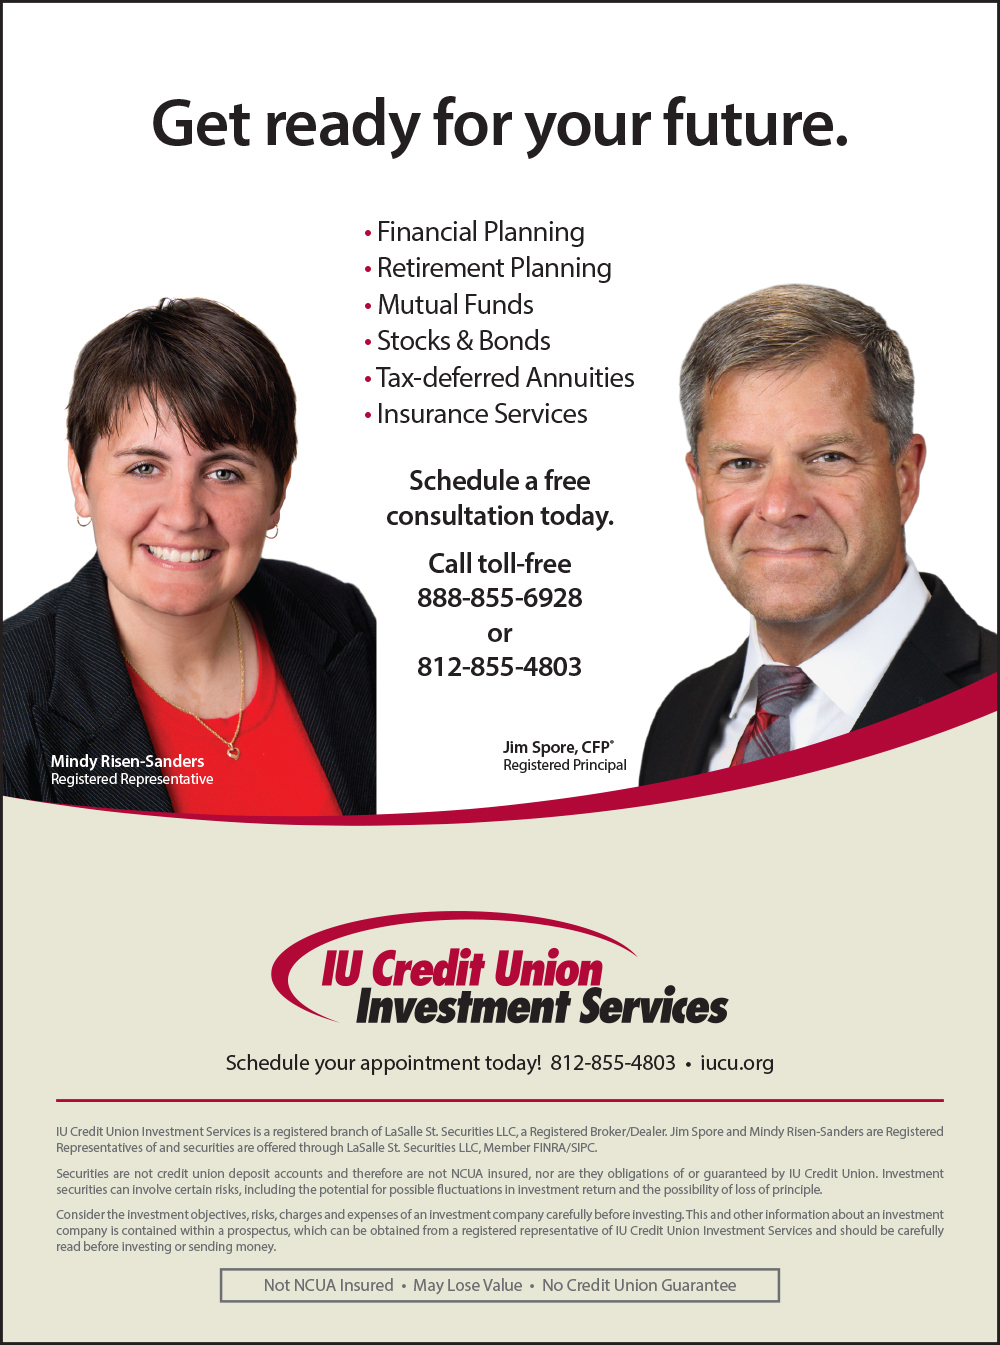 IU Credit Union Investment Services